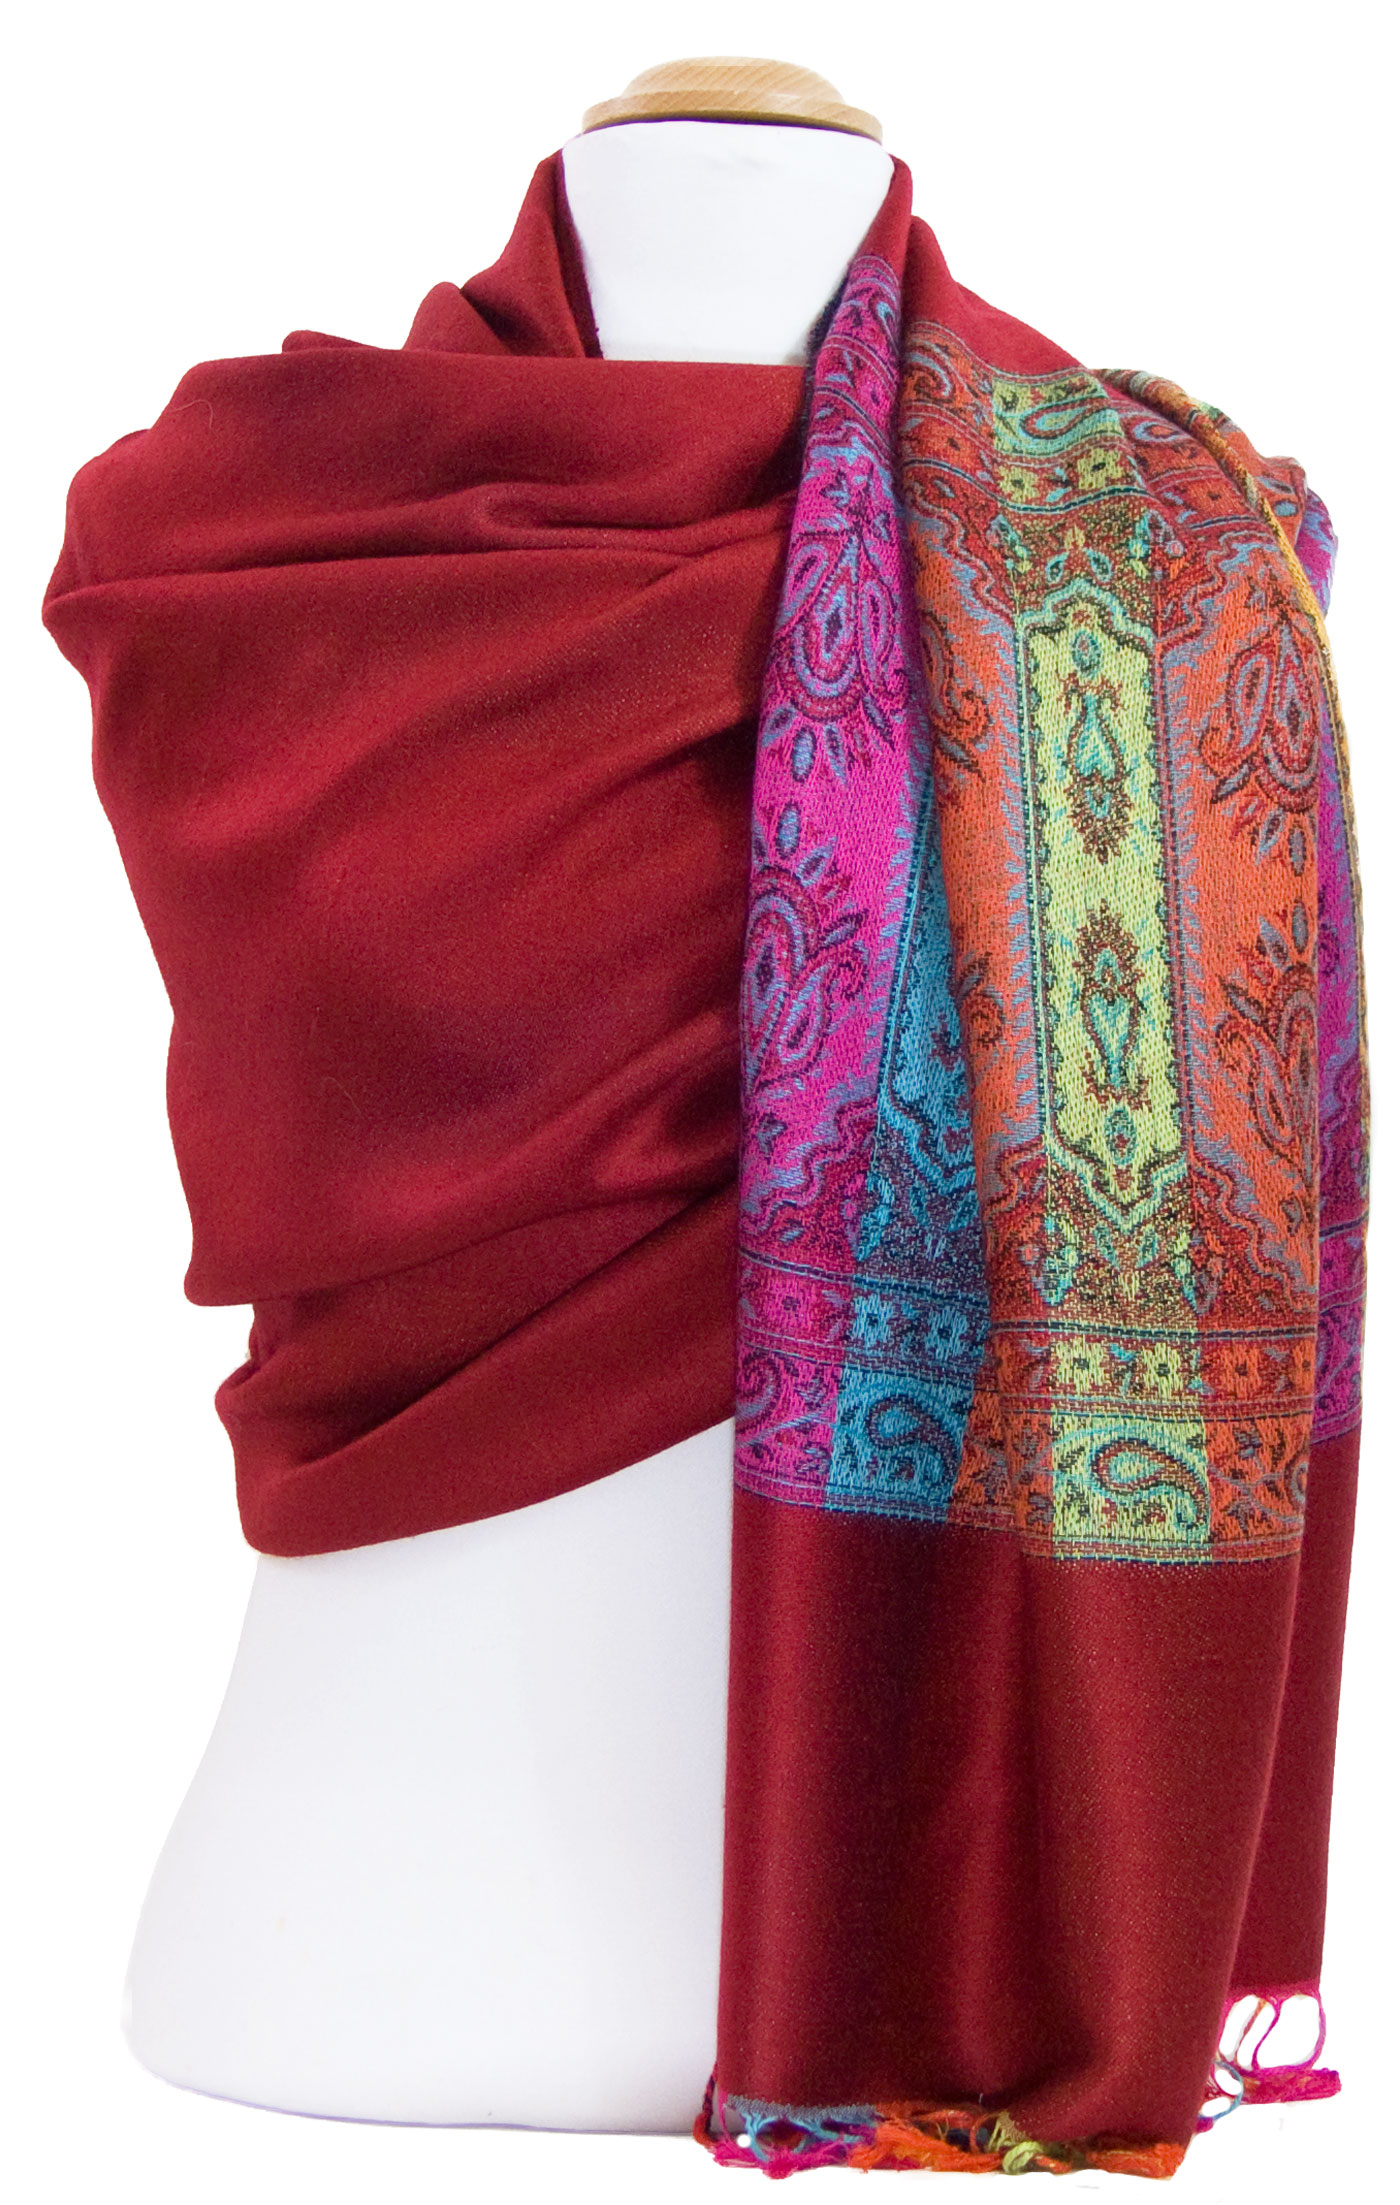 Etole pashmina rouge tissage multicolore